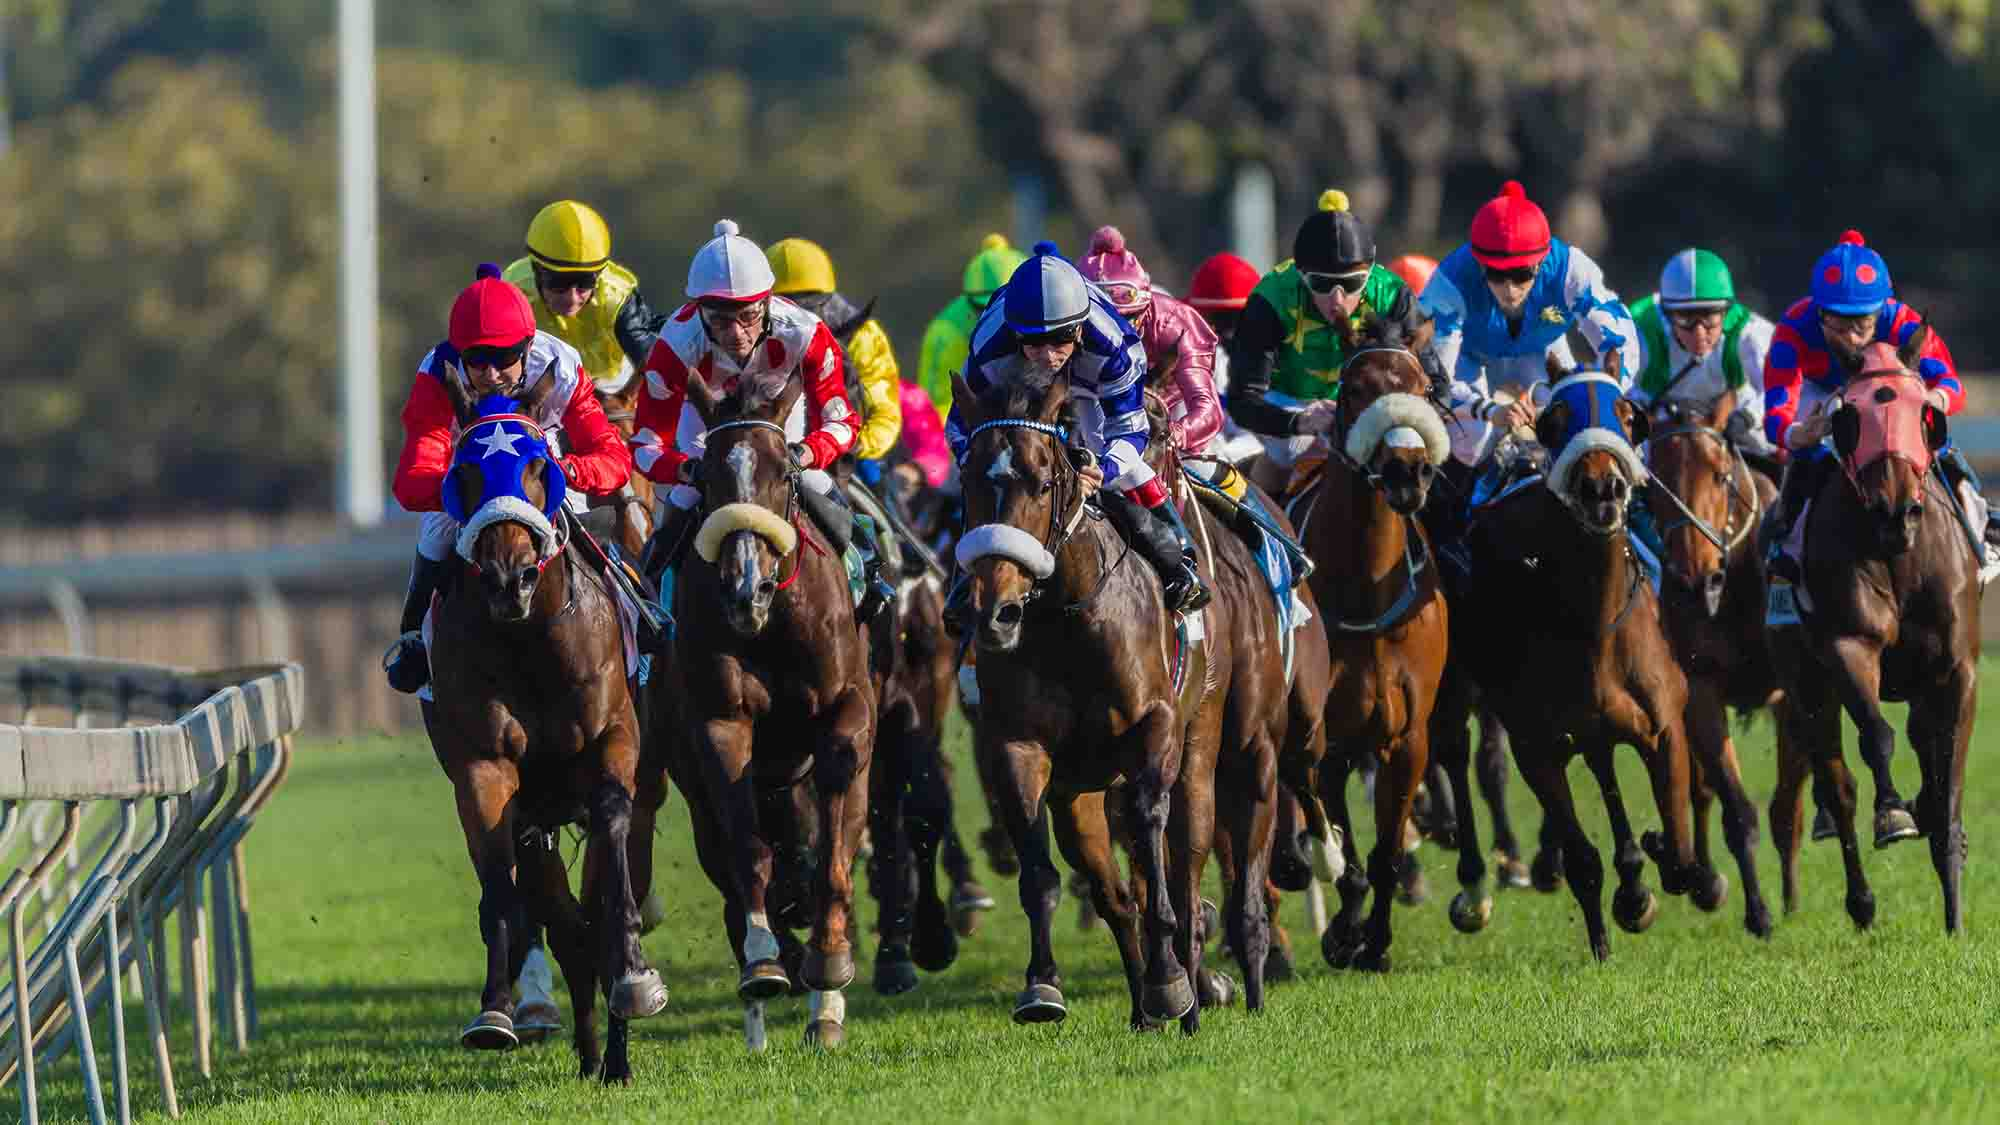 Final Furlong - Enjoy a virtual night at the Races with your remote team.